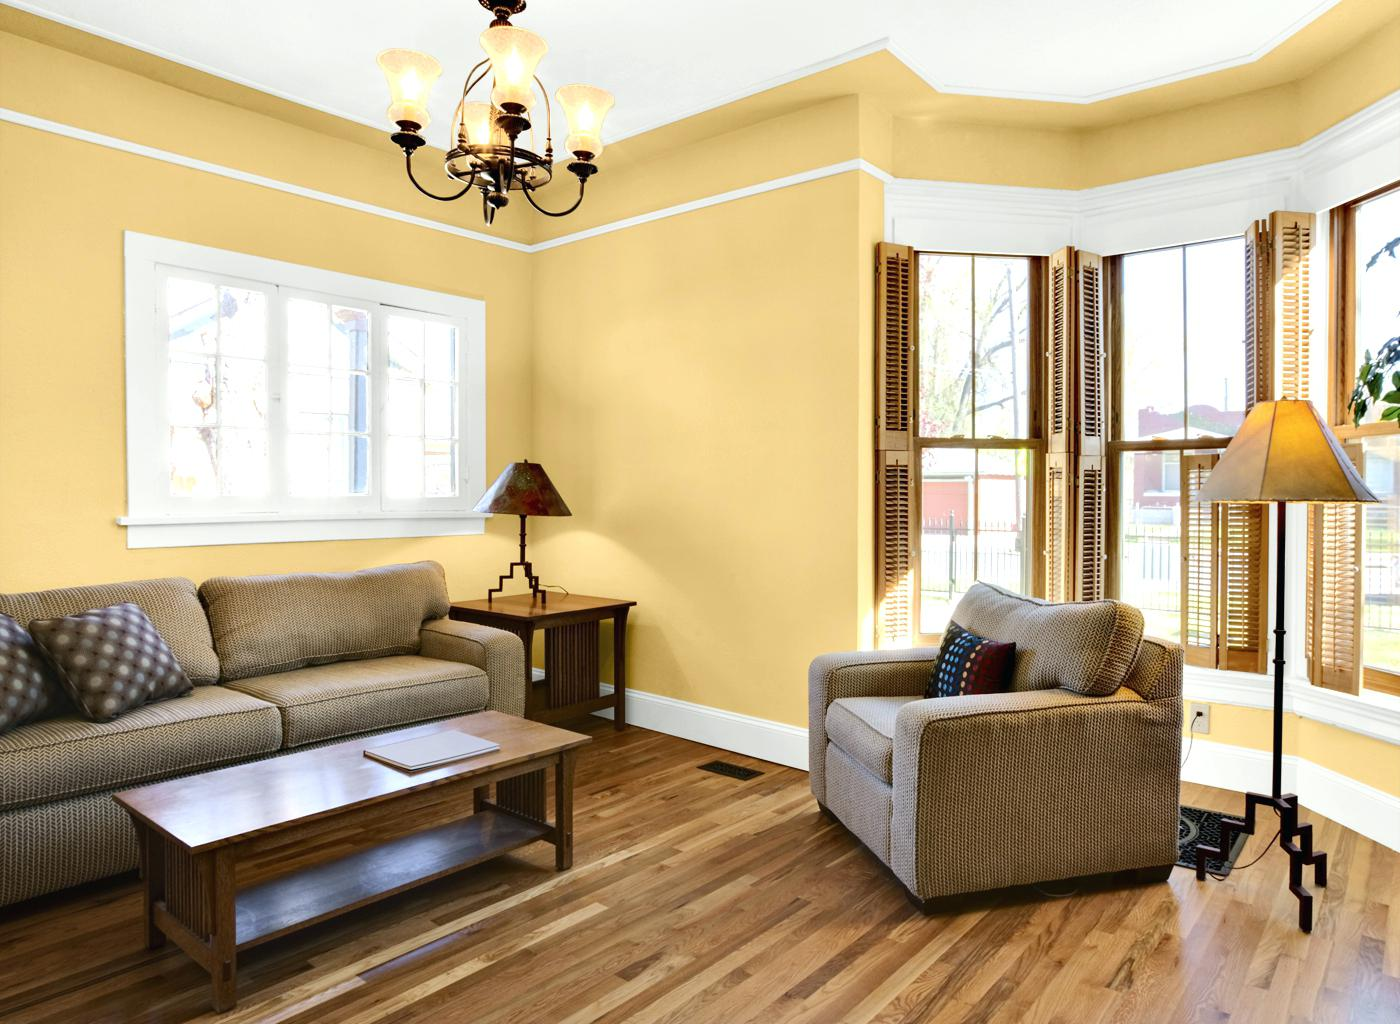 50 Living Room Paint Color Ideas for the Heart of the Home ... on Room Painting id=97654